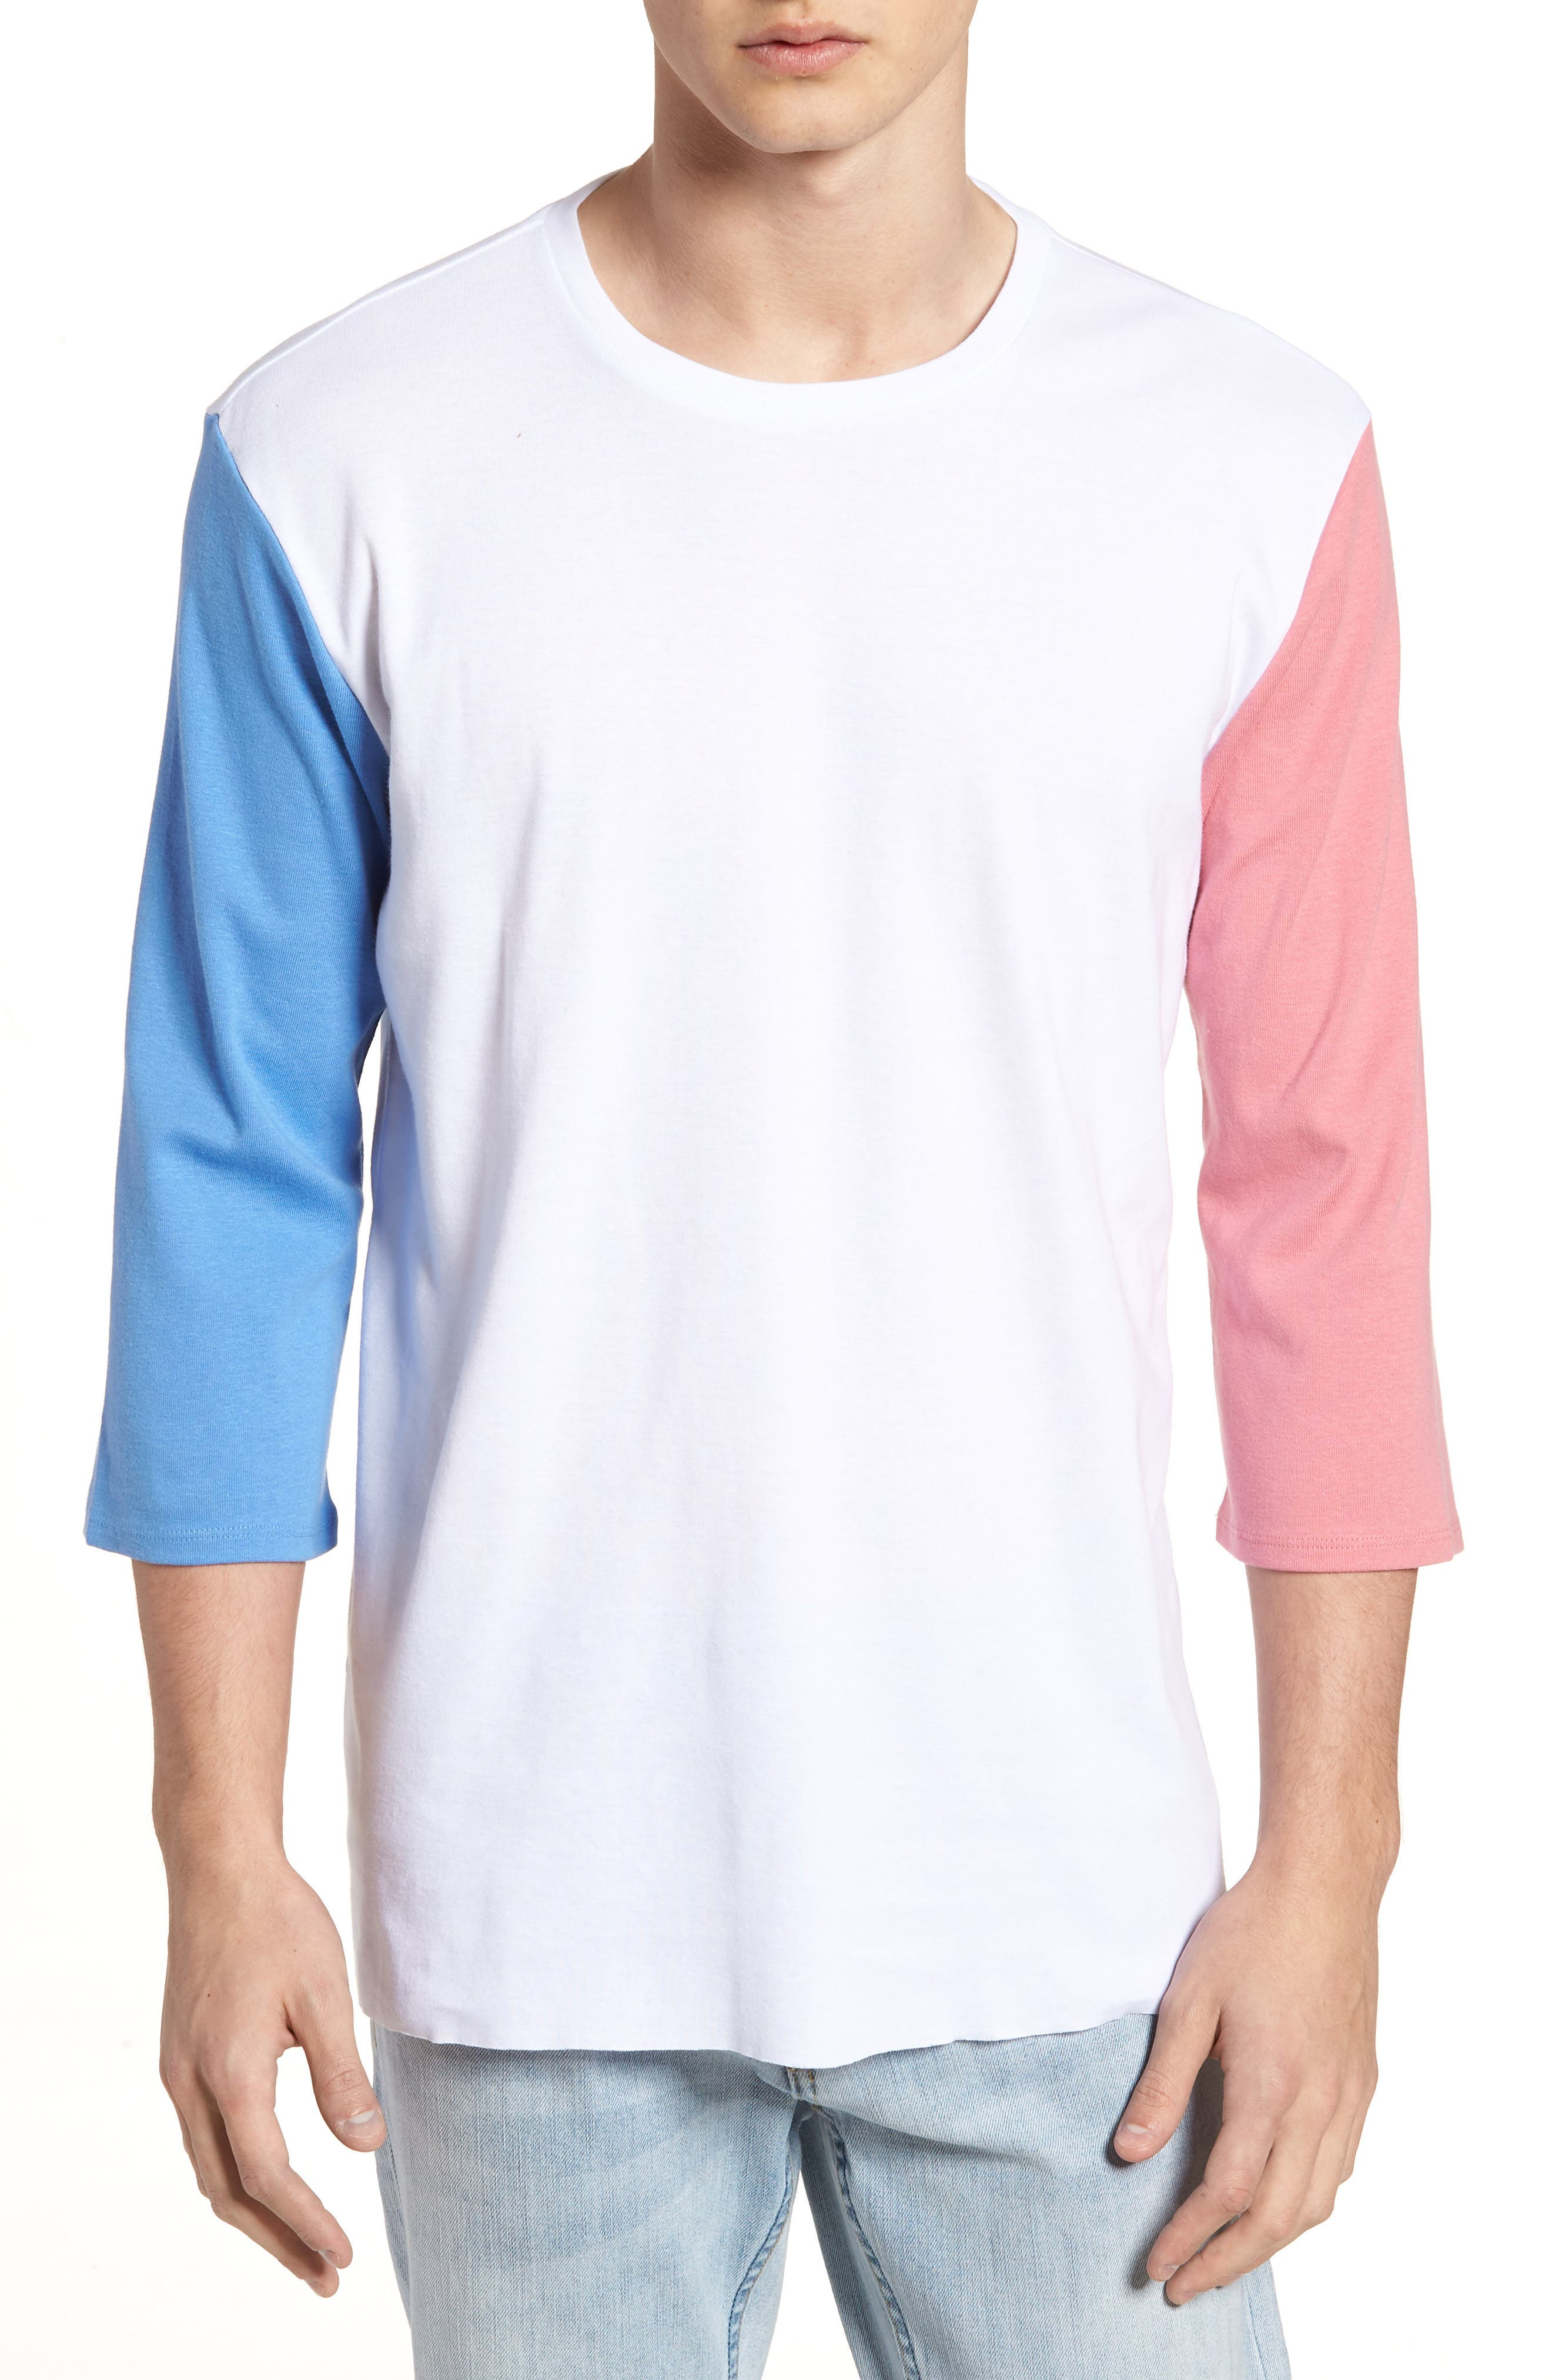 Contrast Sleeve T-Shirt,                         Main,                         color, White/ Pink / Blue